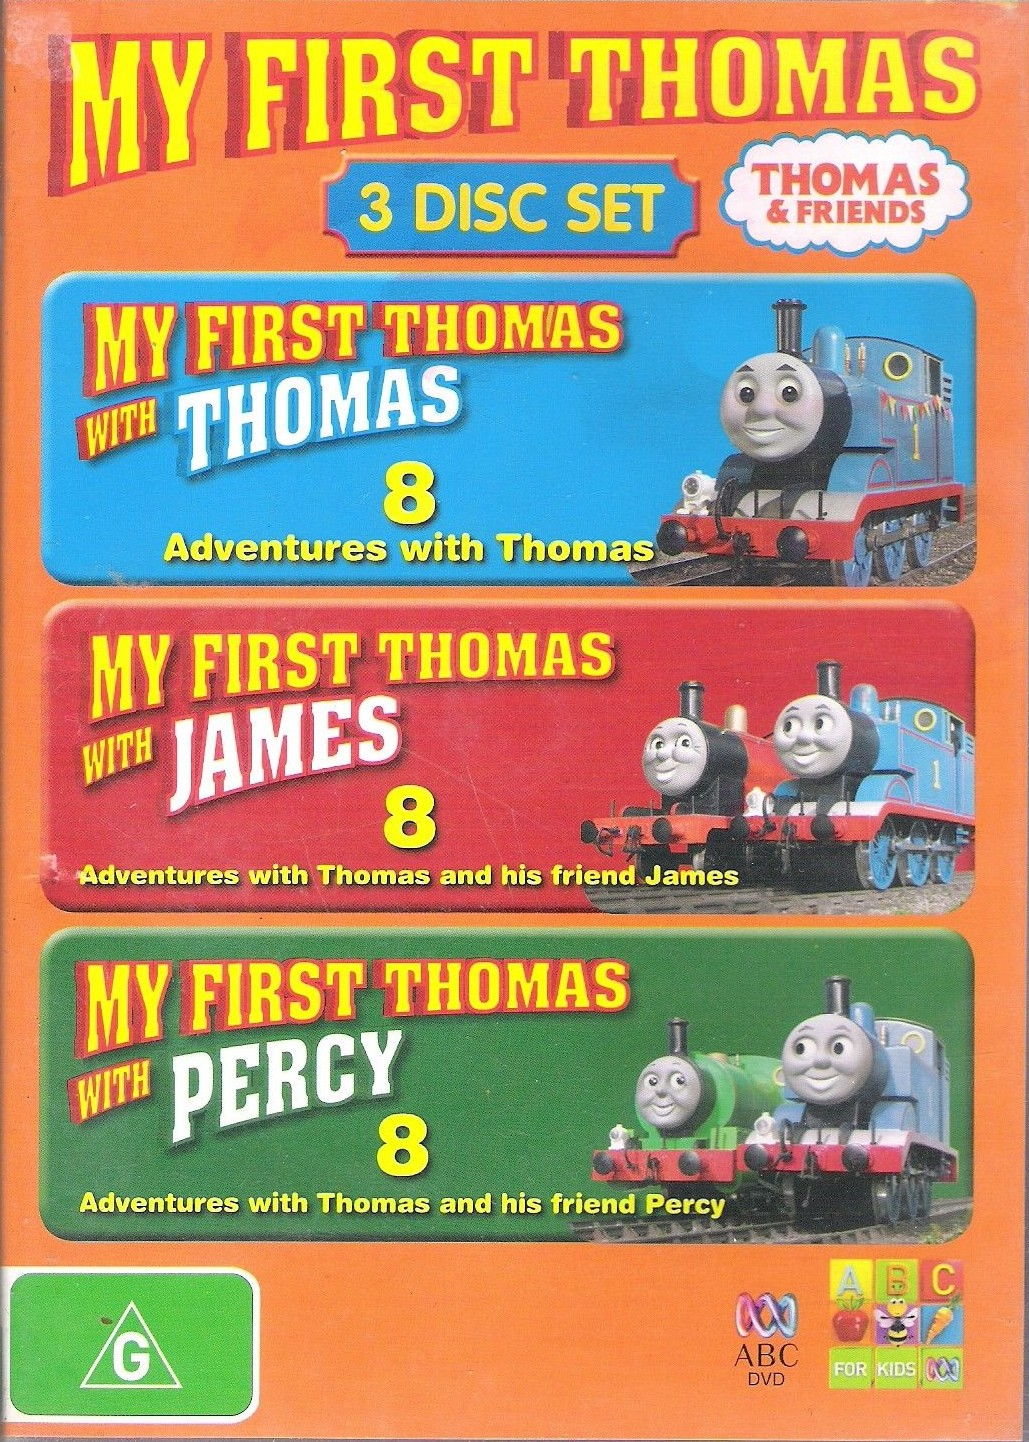 My First Thomas (3 Disc Set)